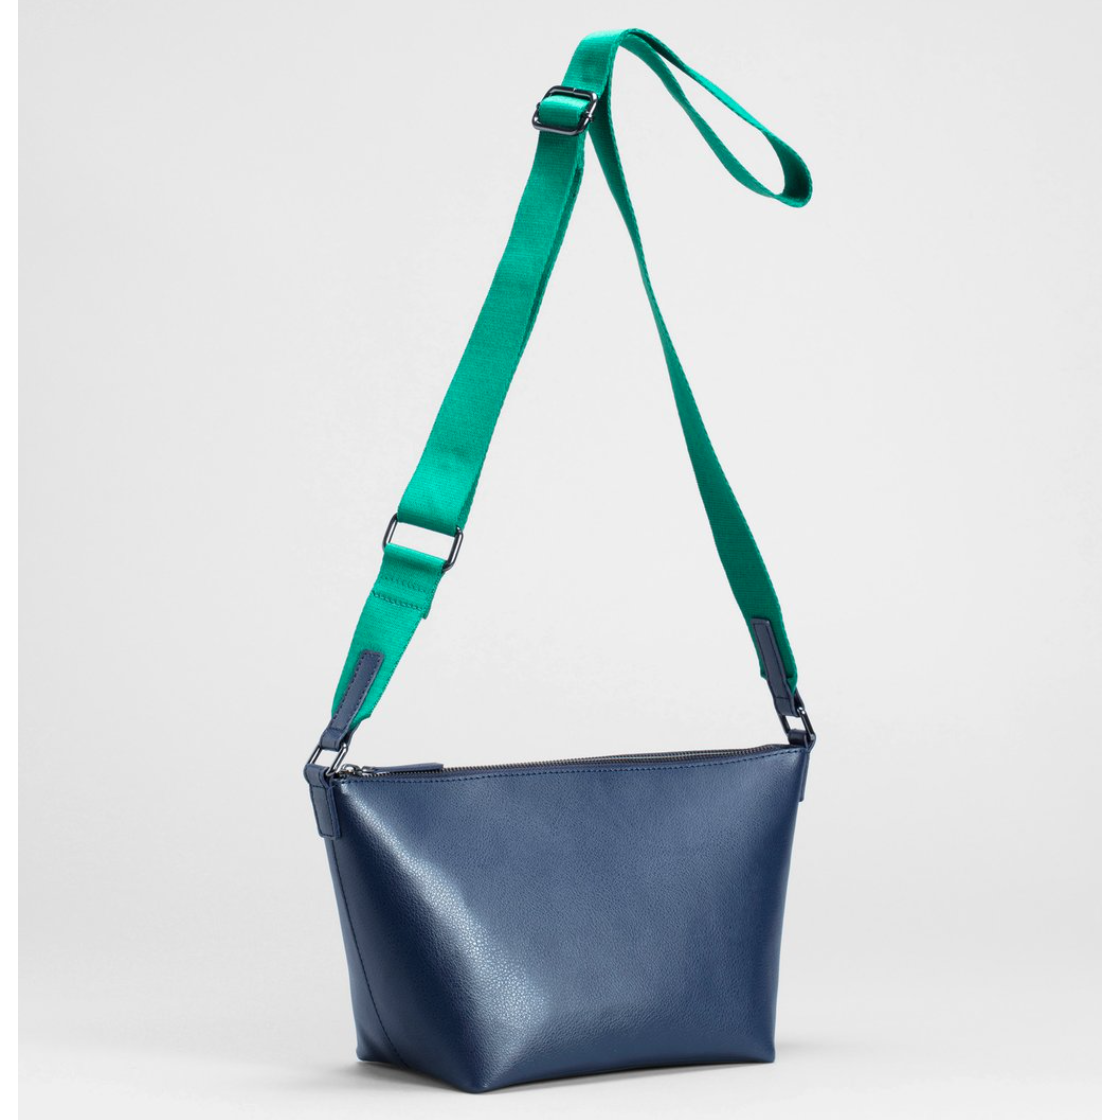 Leni Small Bag - Navy/Green - 100% recycled leather